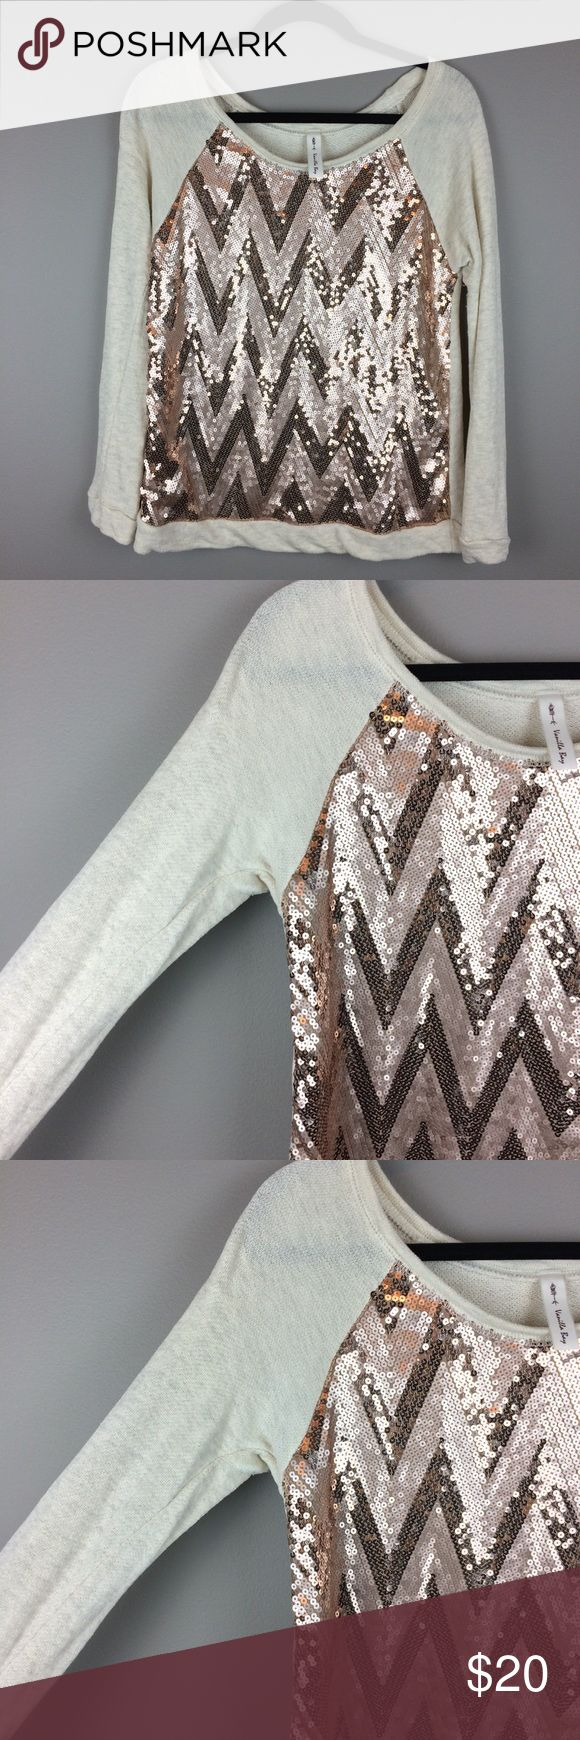 Rose gold Chevron Sequin slouchy sweatshirt top Condition: Preowned, no holes or stains. Great condition   Color: heathered cream and rose gold sequins  Measurements: Listing as a size medium- tags have been removed- measures like a medium- please read to determine and compare measurements to something you already own. Underarm to underarm is approximately 17 1/2 inches across.  Length from back of neck to bottom of hem is approximately 21 inches. Tops Sweatshirts & Hoodies